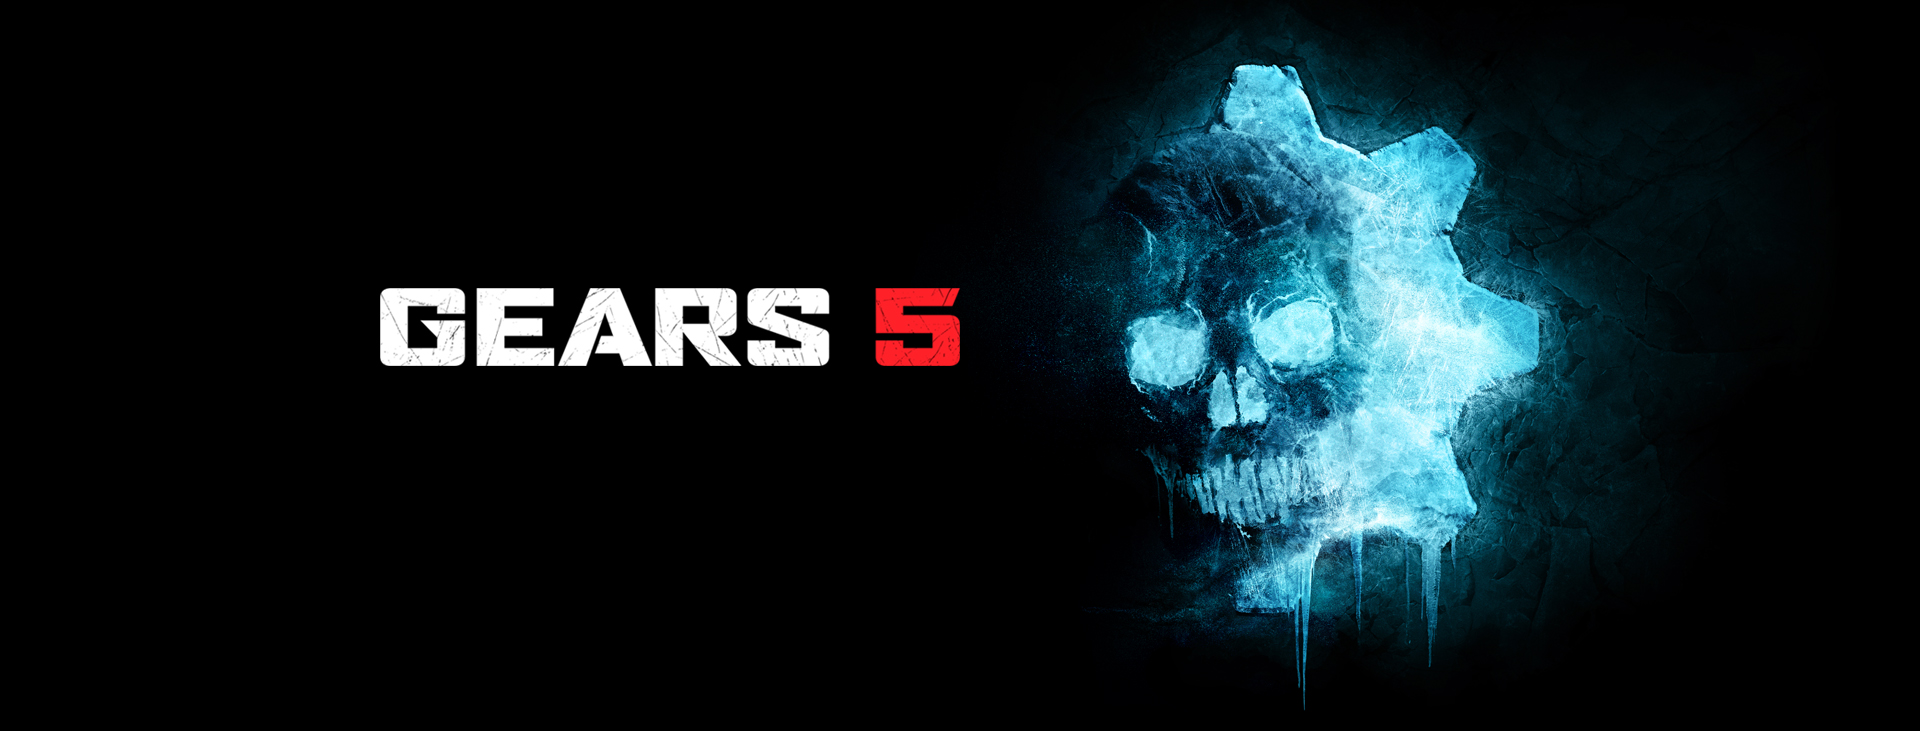 Gears 5 Wallpaper Gears Of War Official Site Games